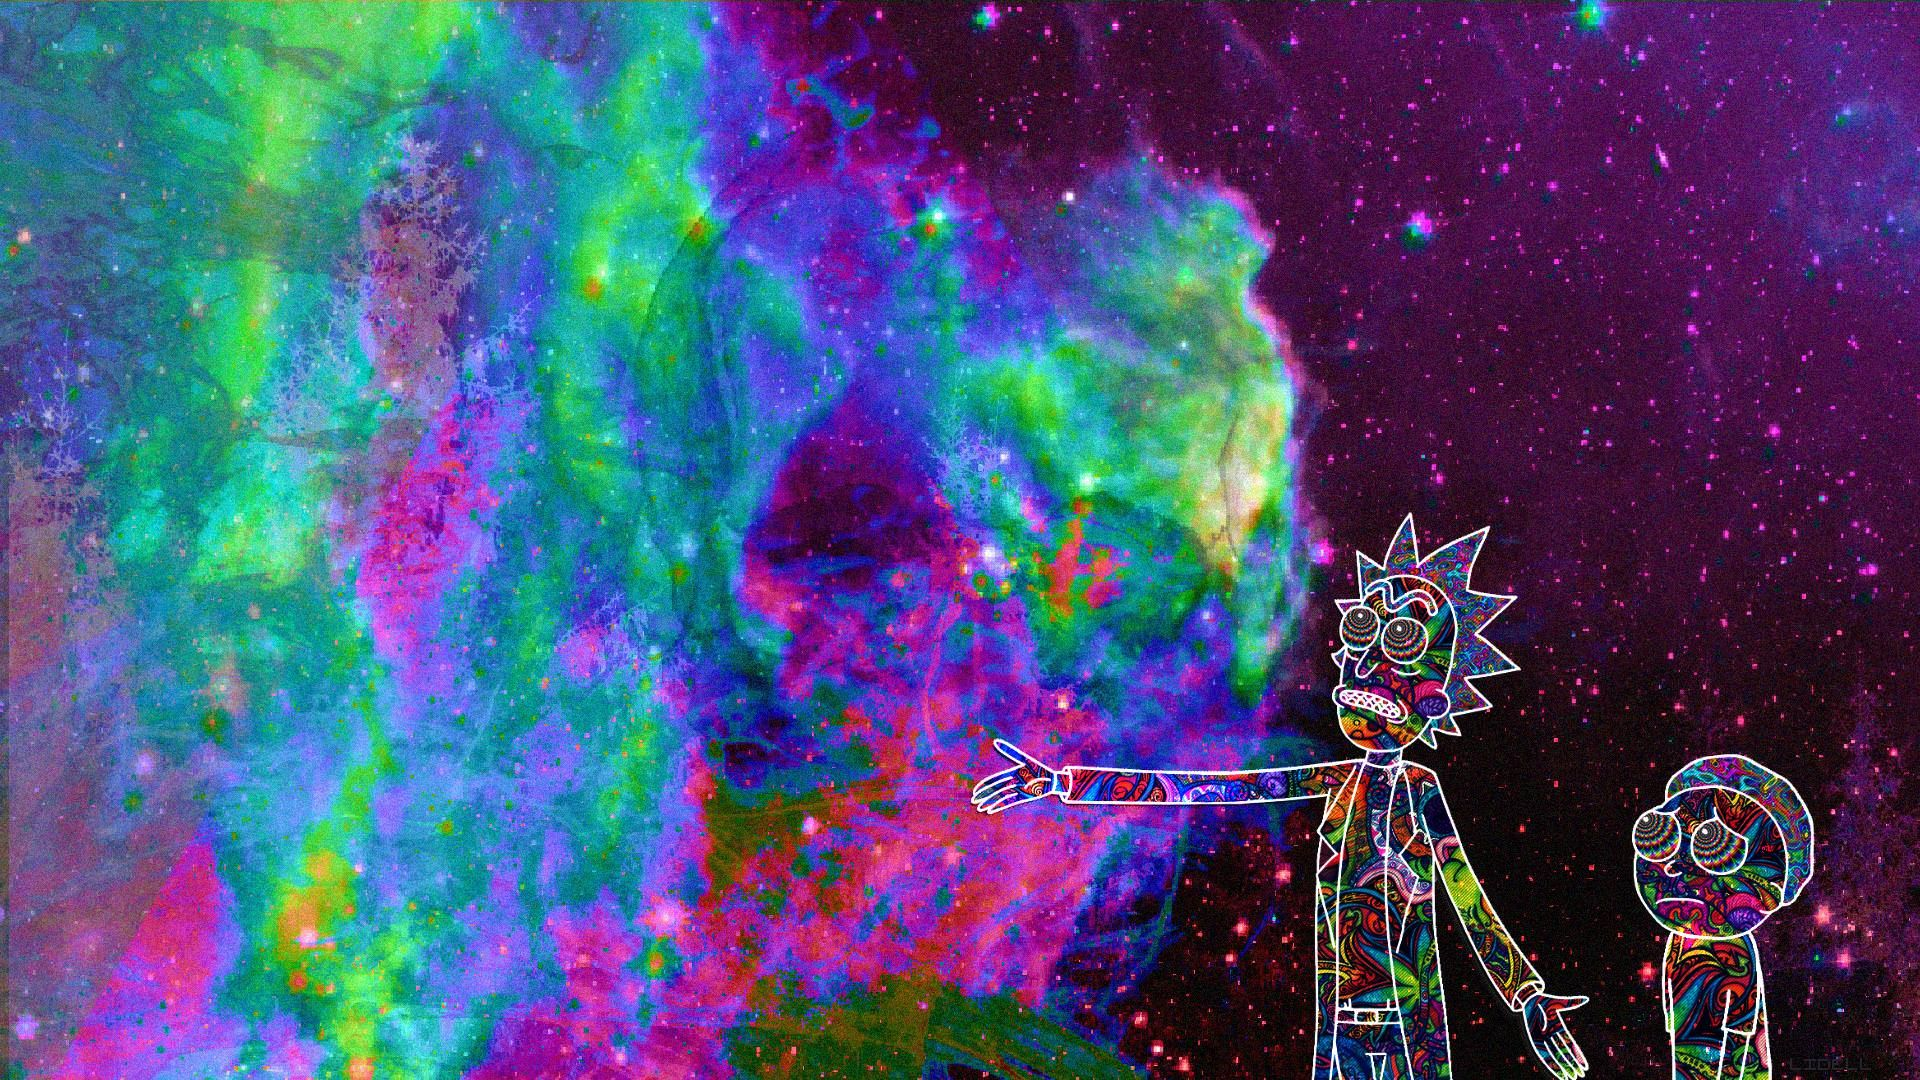 Rick And Morty Desktop Wallpapers 1920x1080 Desktop Wallpaper 1920x1080 Trippy Wallpaper Computer Wallpaper